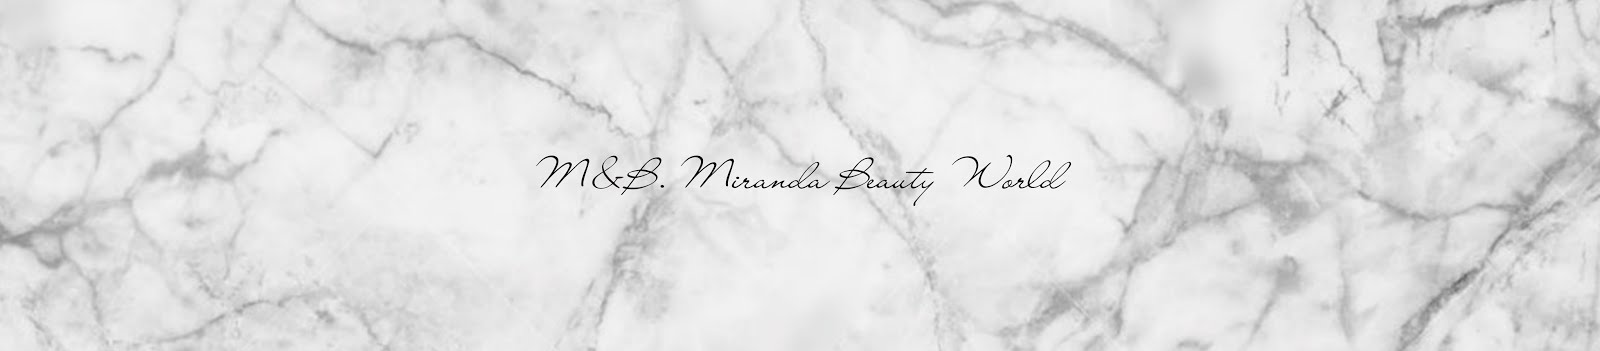 mirandabeautyworld